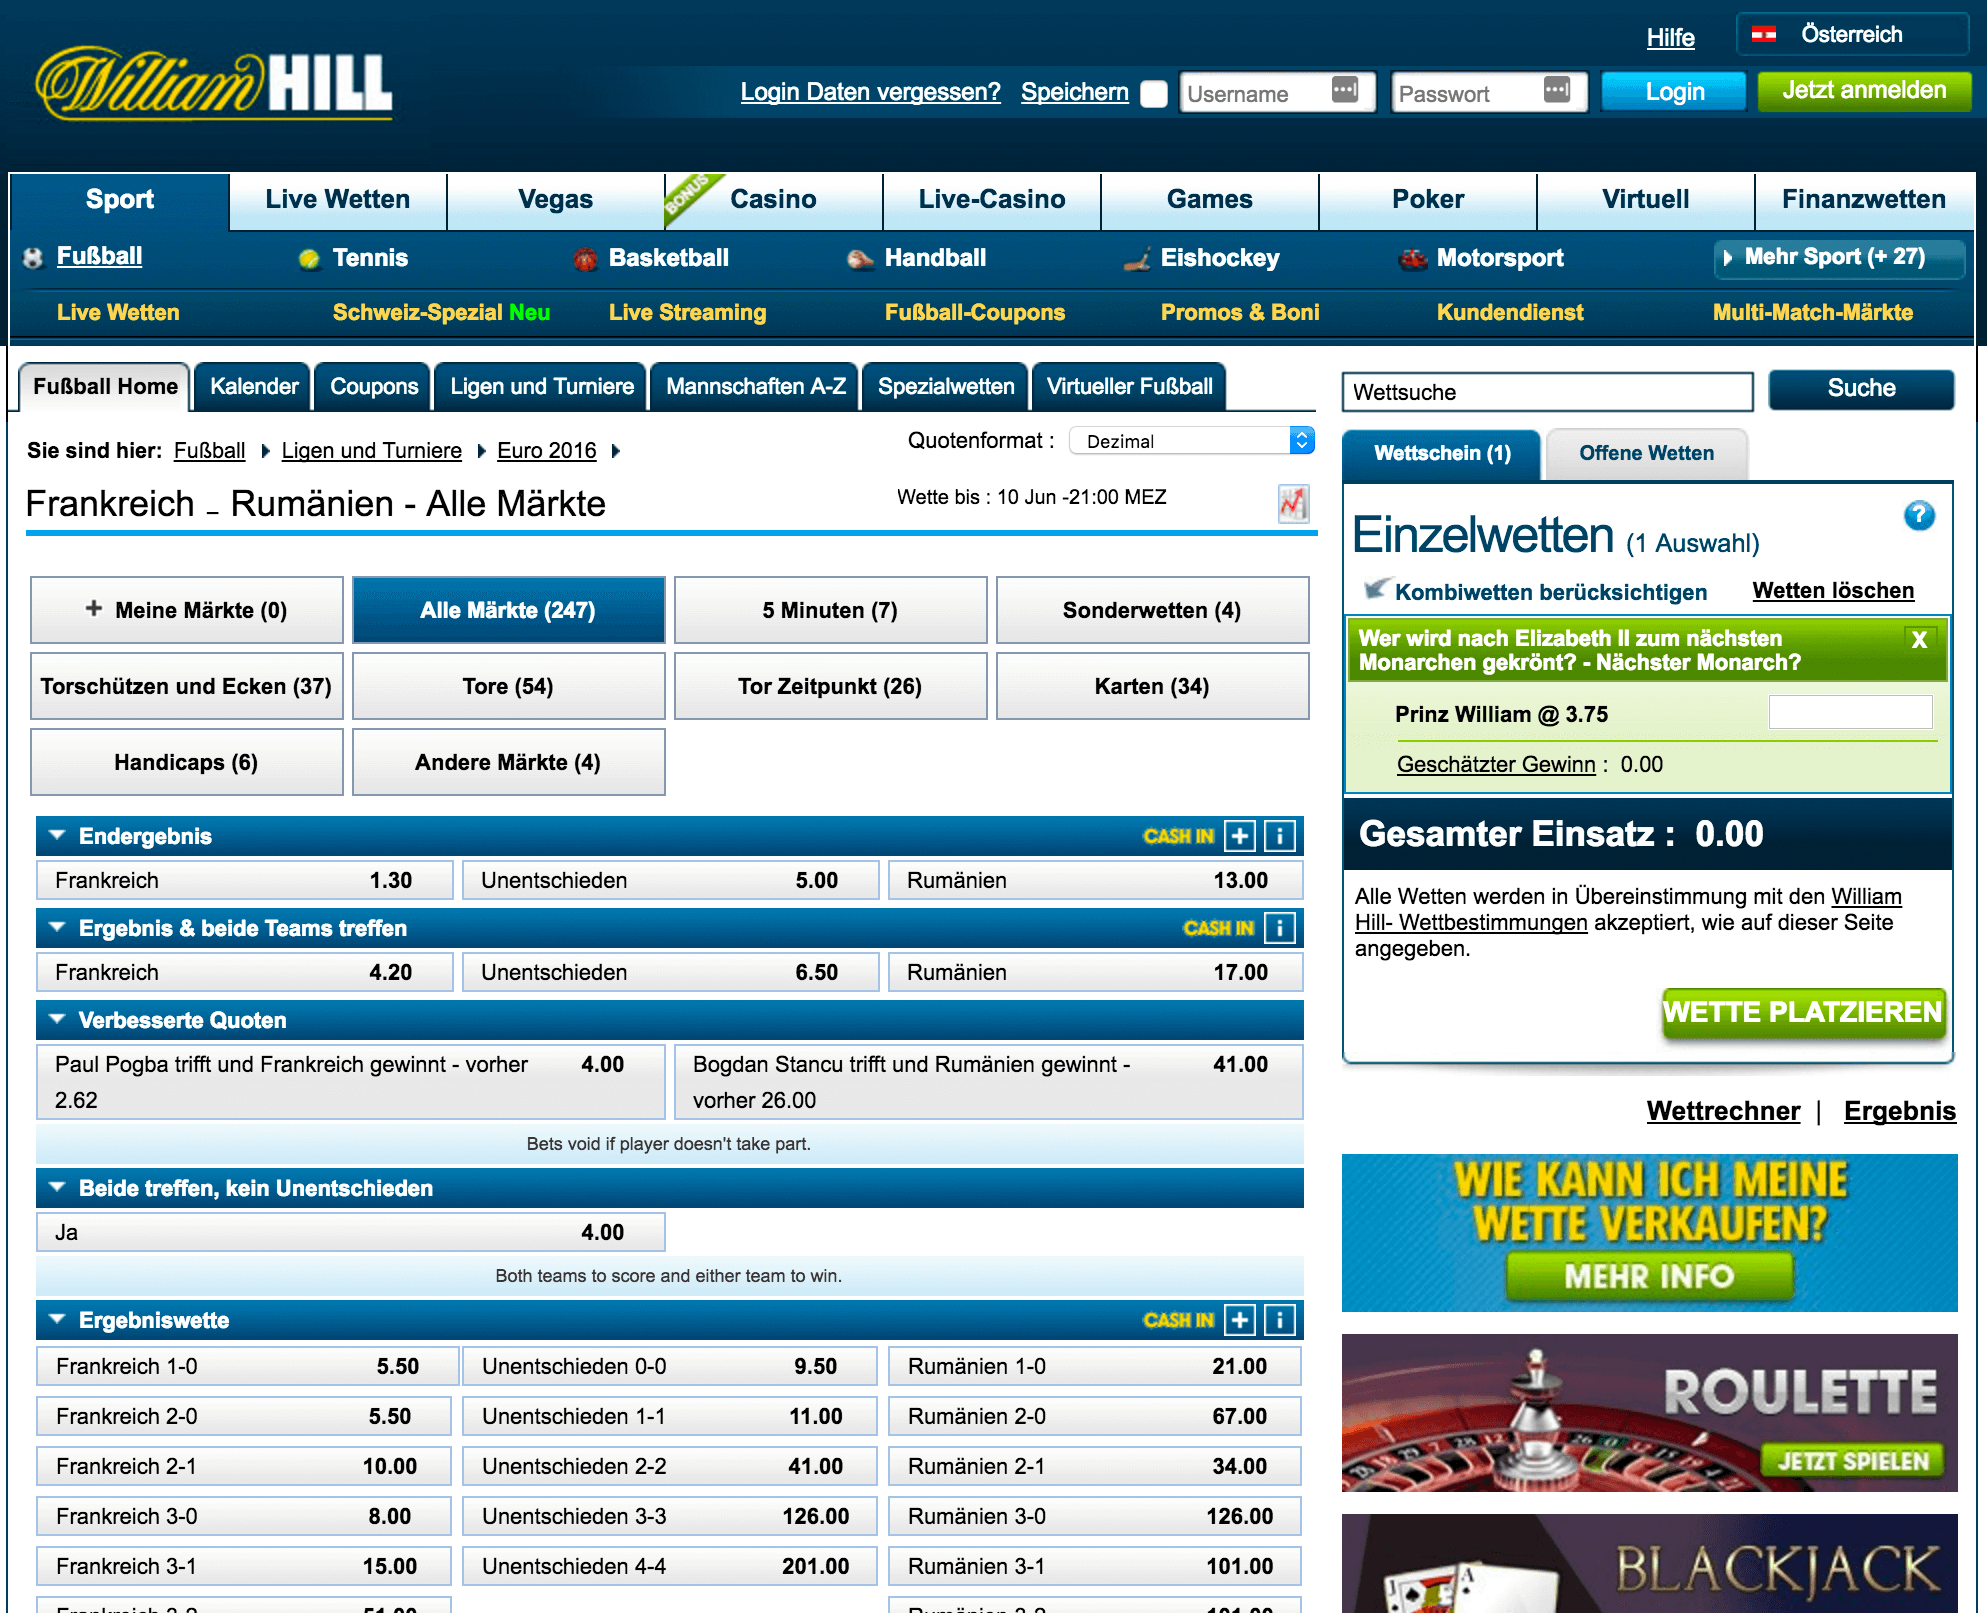 william hill sonderweten